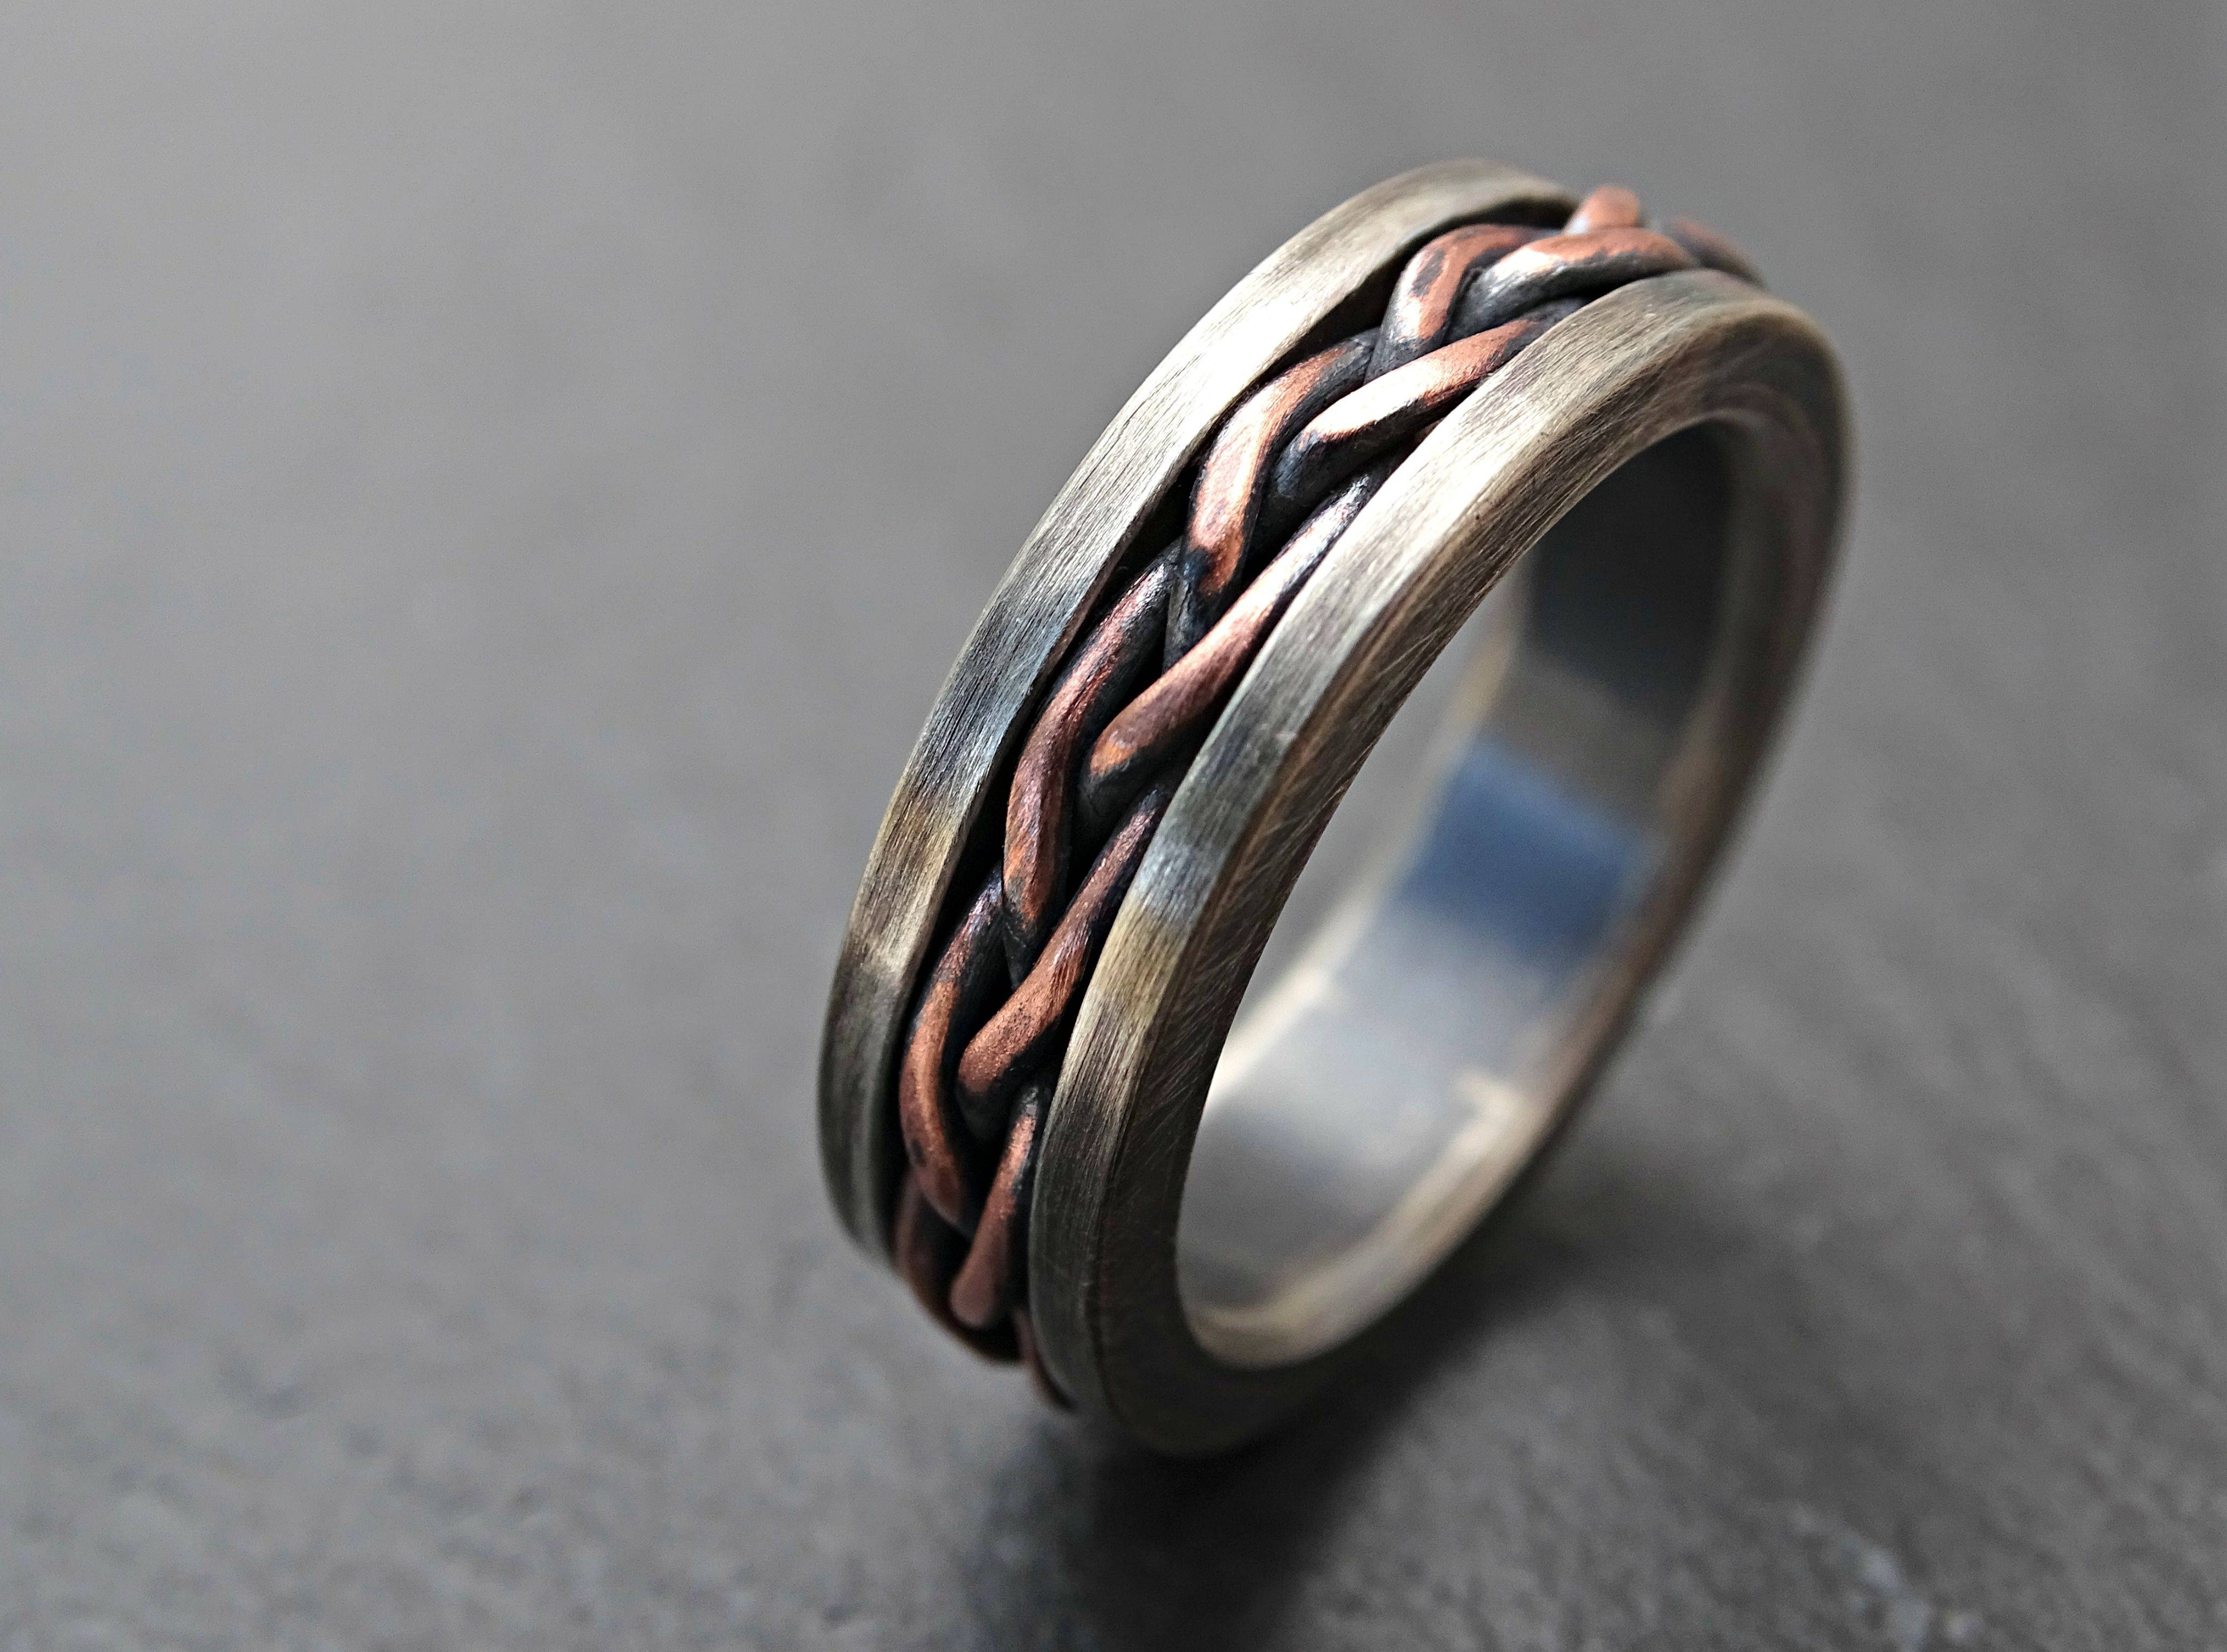 Buy A Hand Crafted Viking Wedding Band, Braided Ring Two Tone With Regard To Viking Engagement Rings (Gallery 1 of 15)